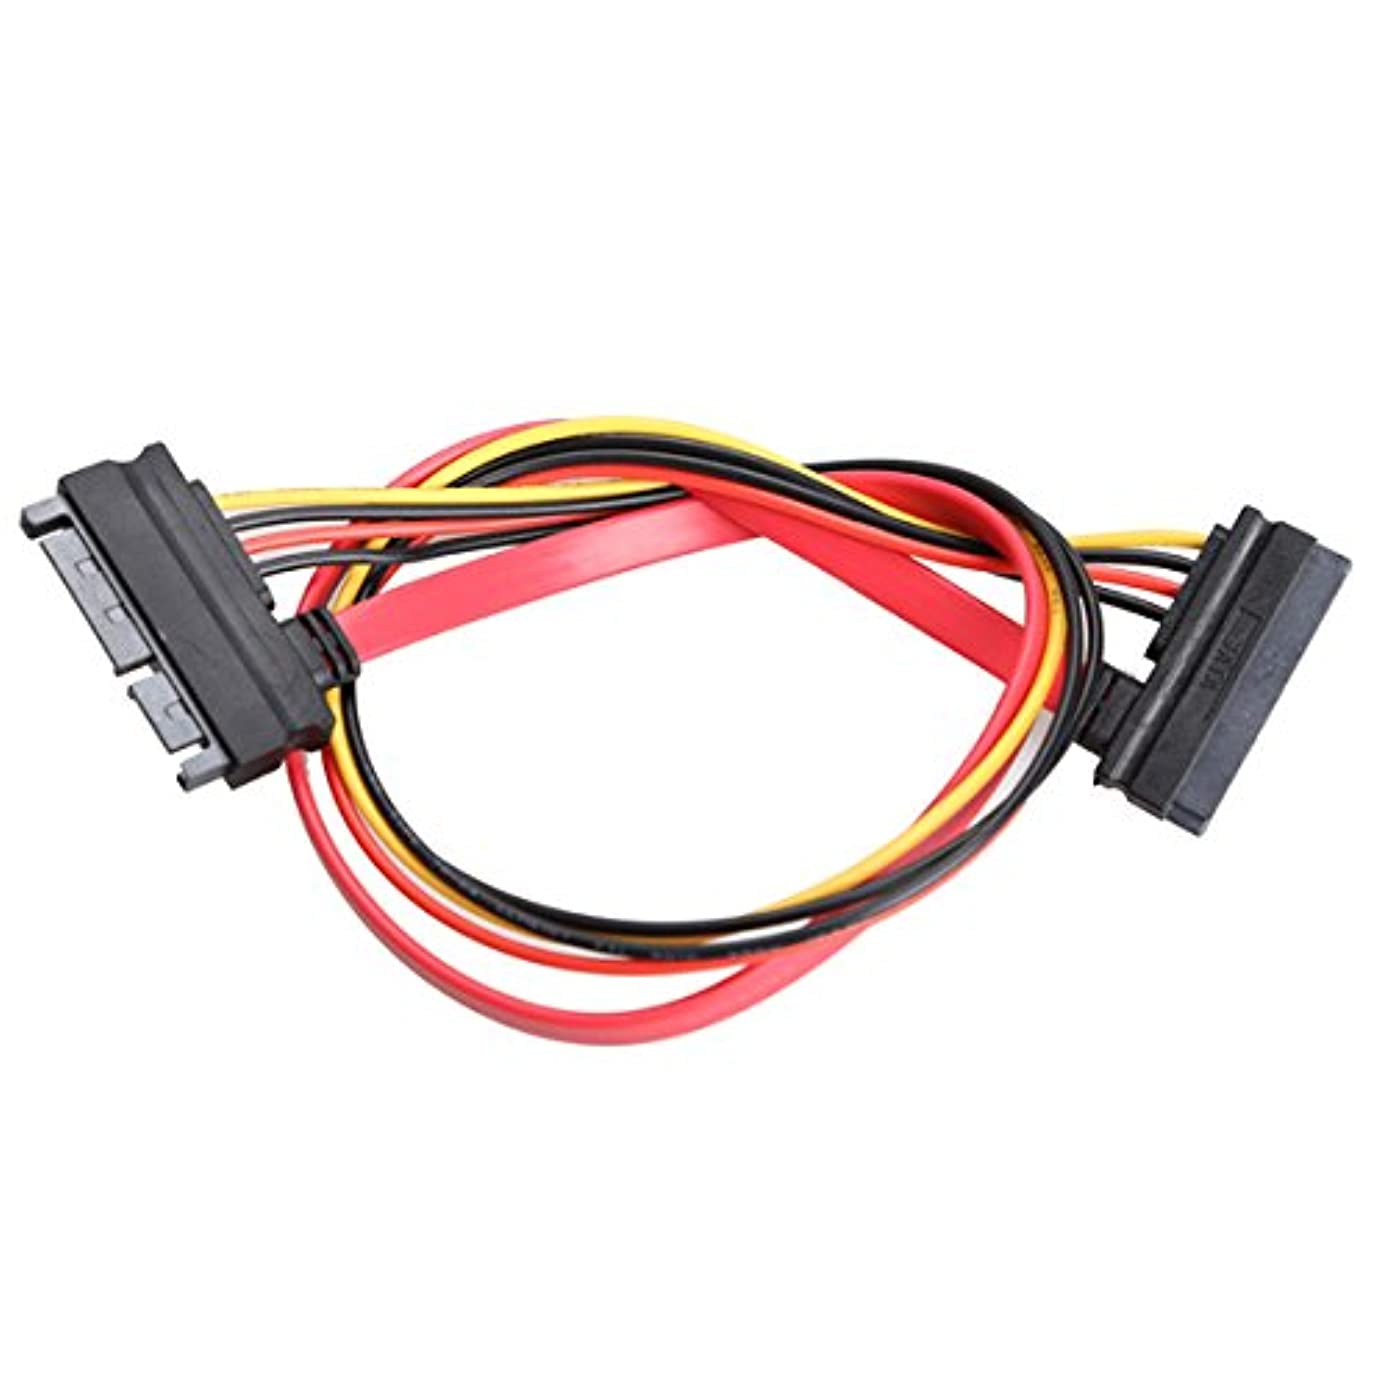 22 Pin Male to Female 7+15 pin SATA Data Power Combo Extension Cable 45CM Computers Accessories